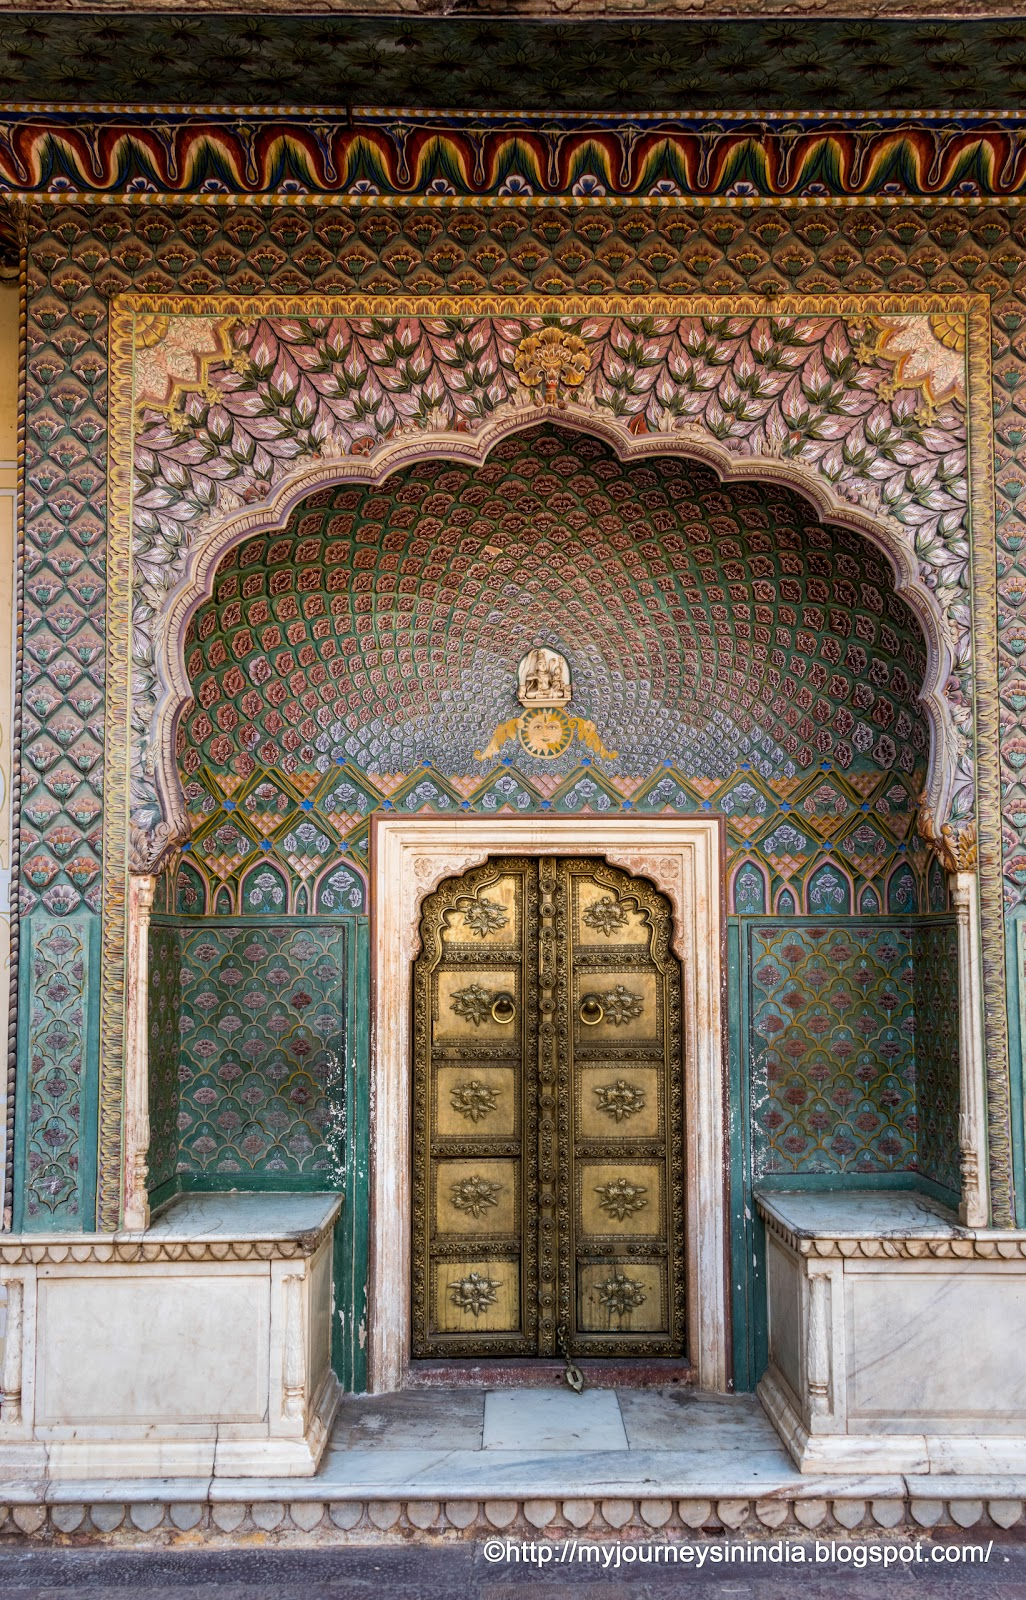 Lotus Gate at City Palace Jaipur